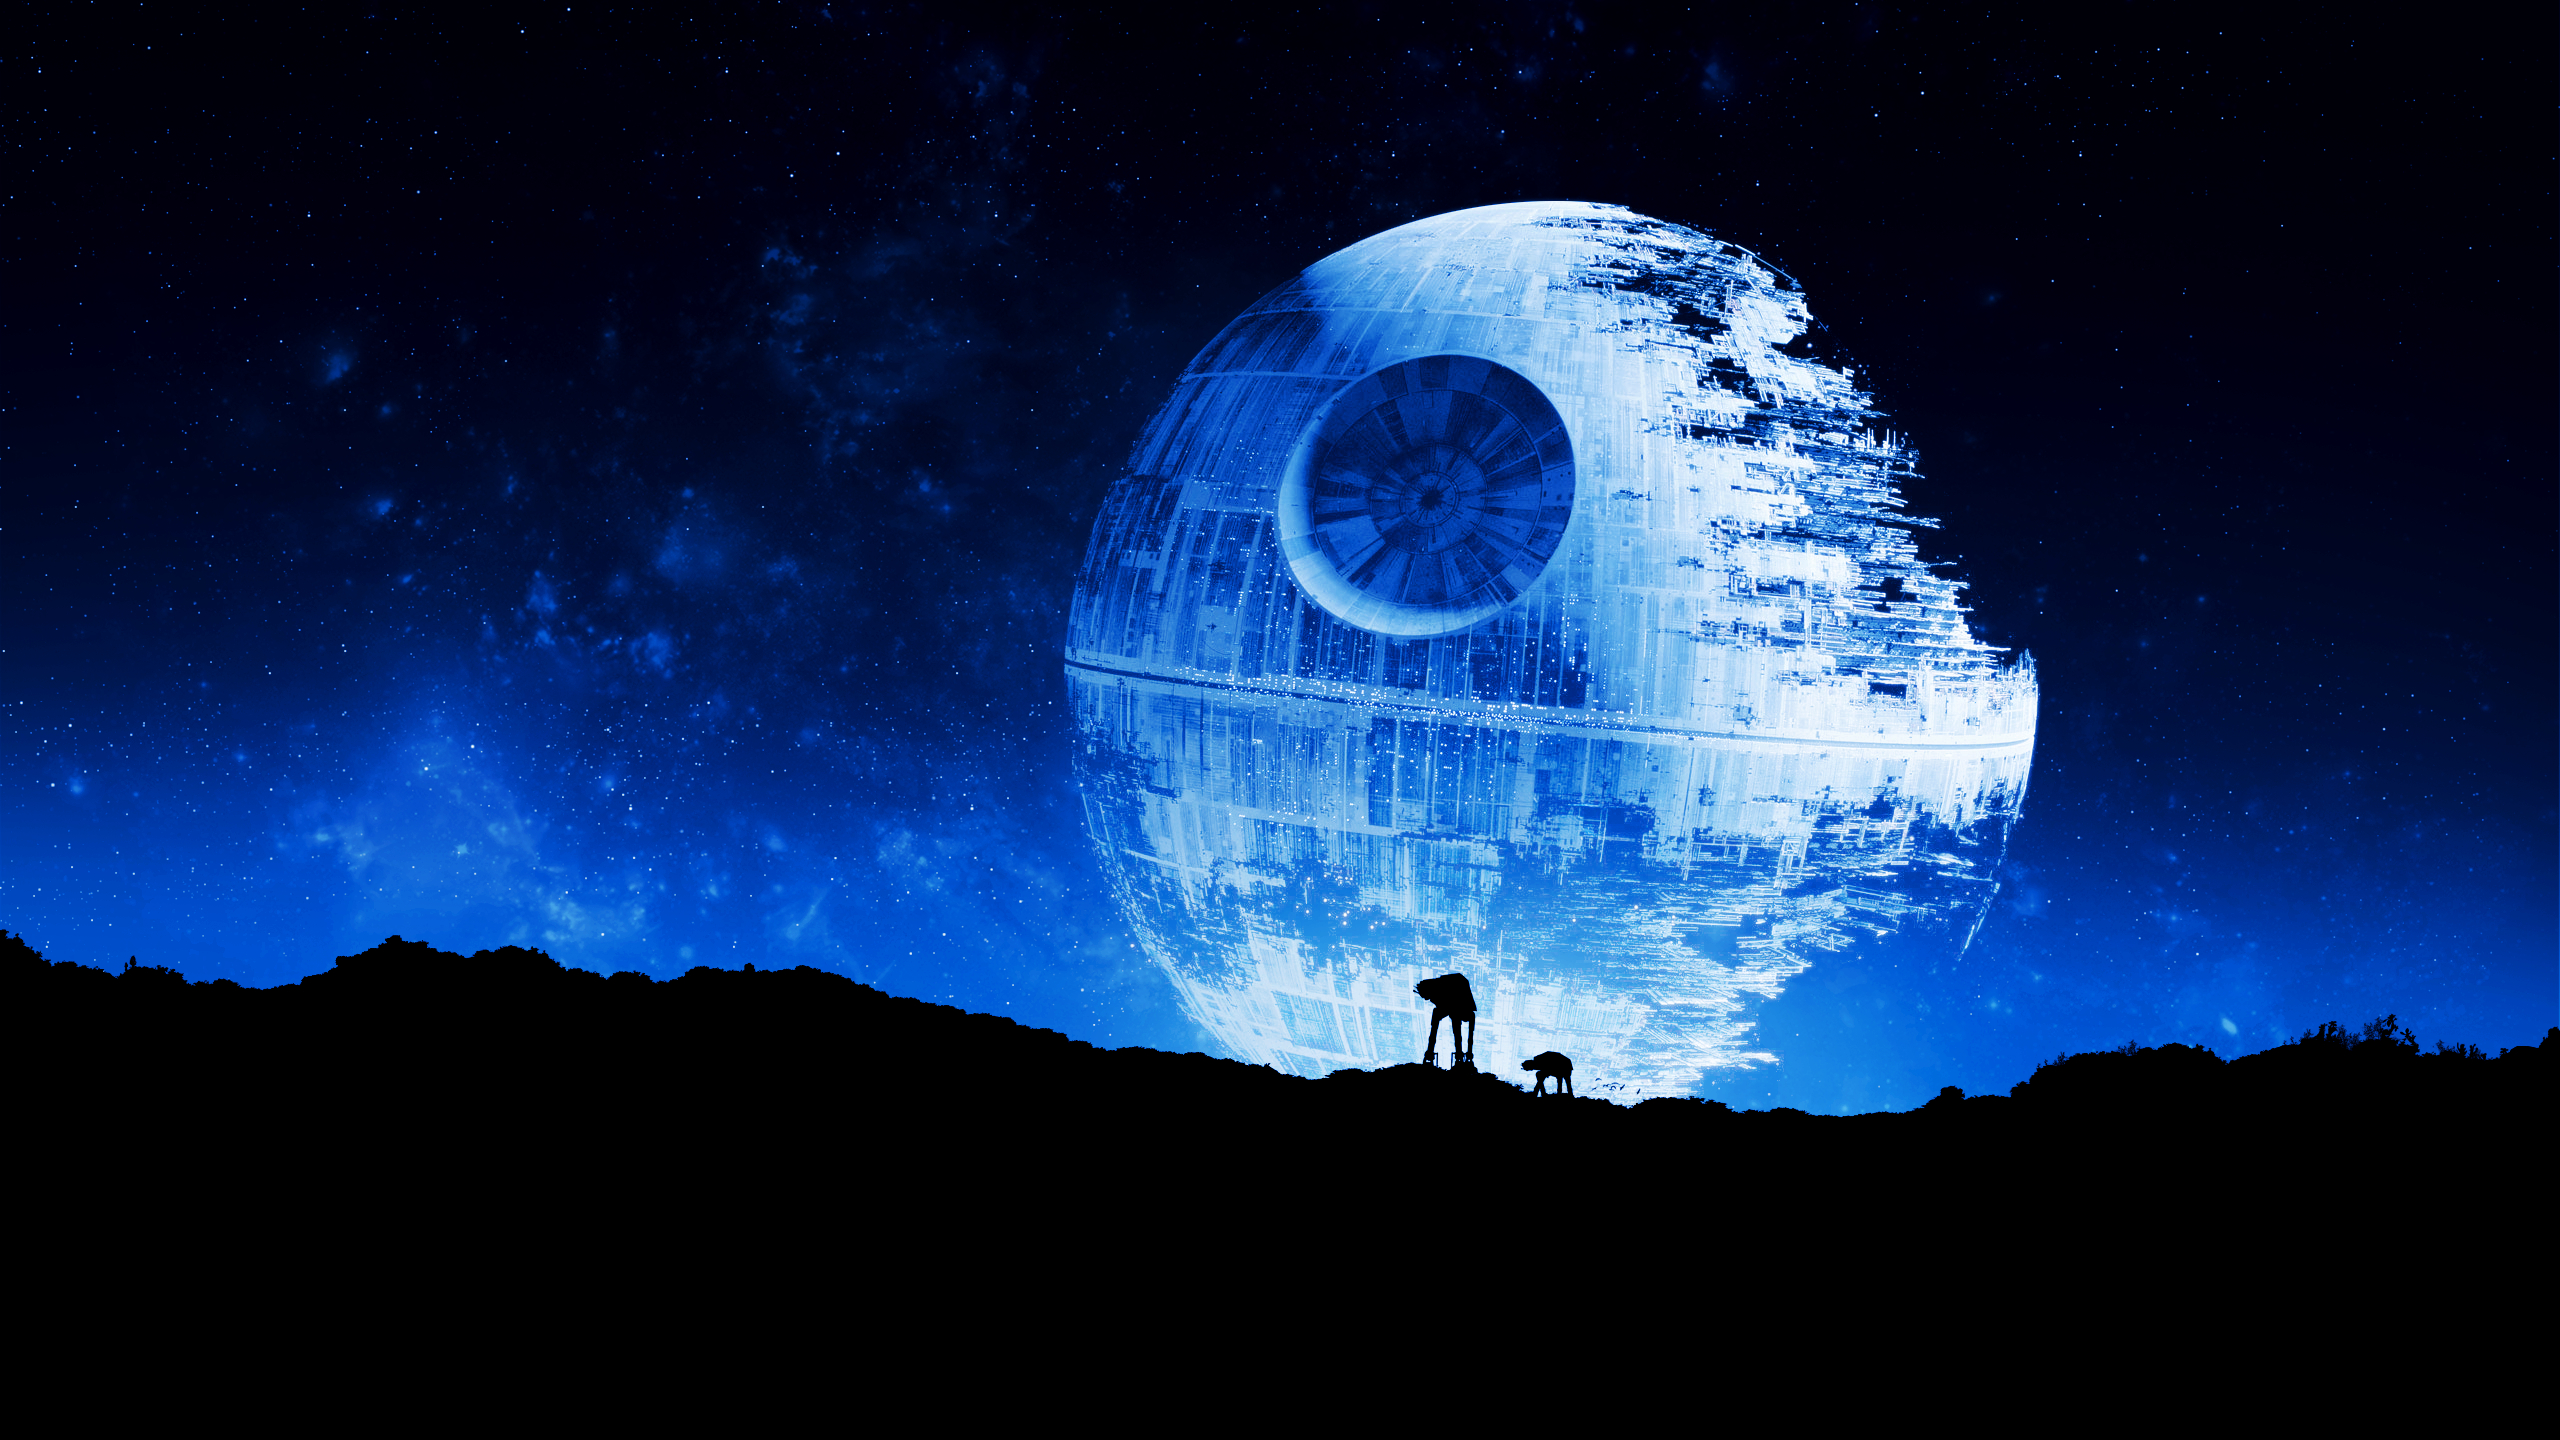 star wars death star (2560x1440) : wallpapers